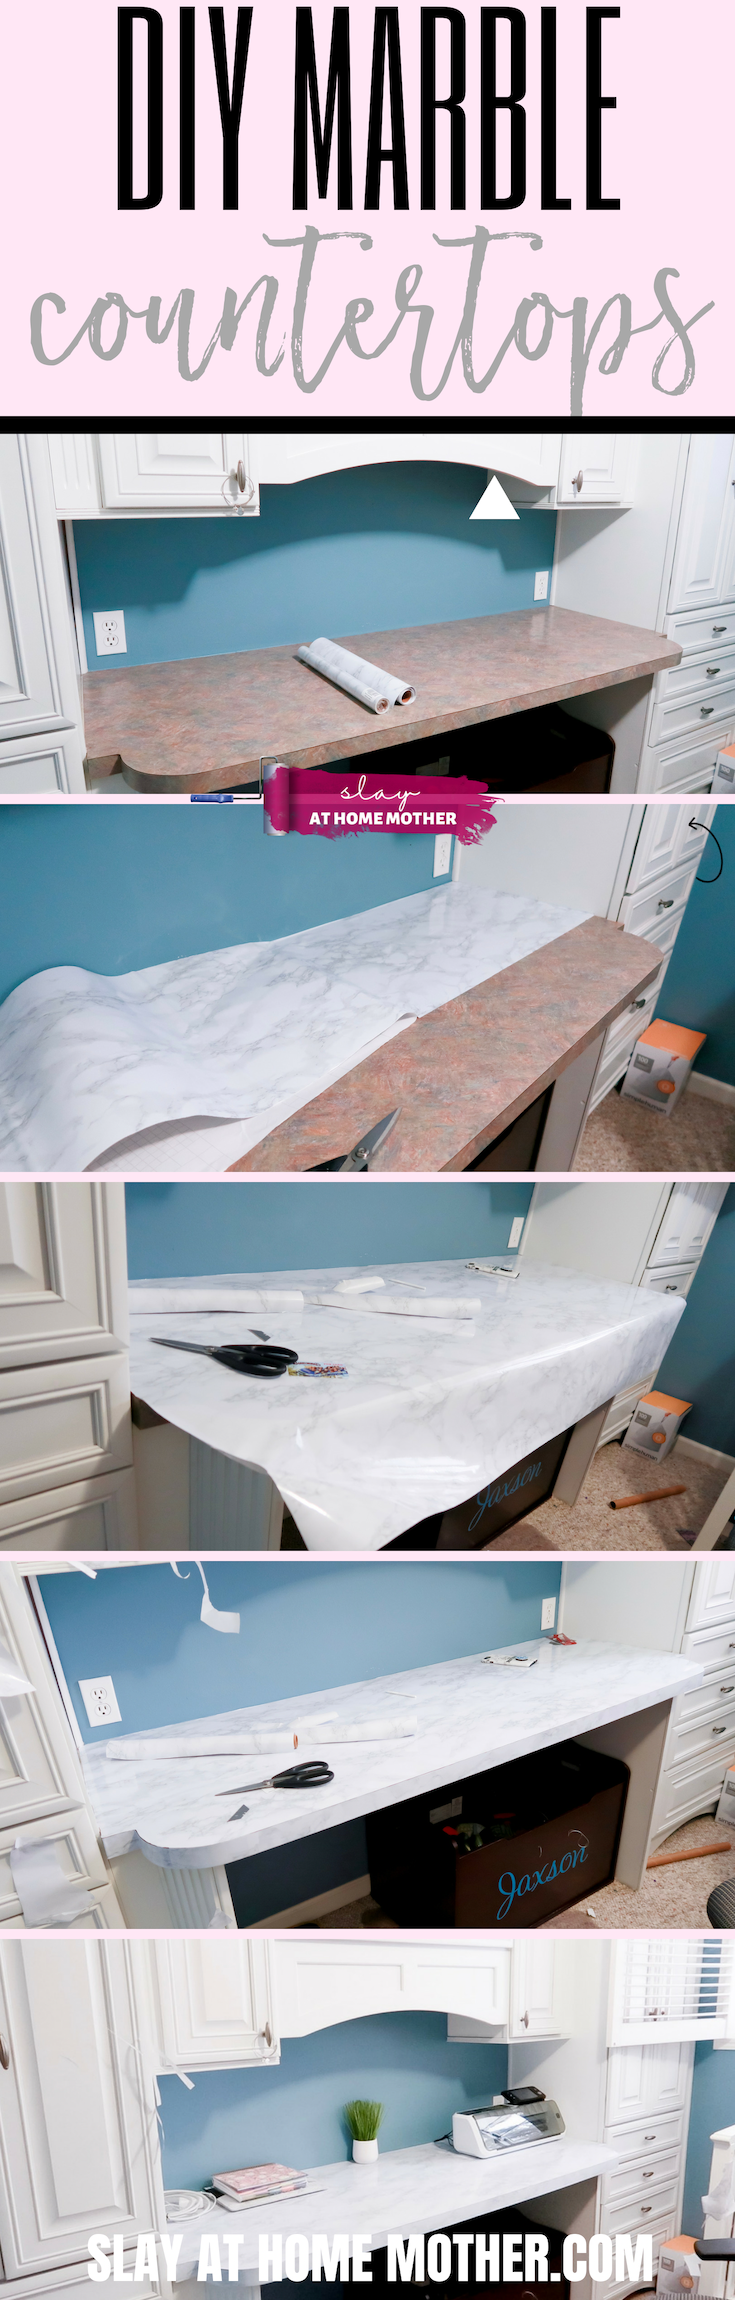 $16 DIY Marble Countertops Using Contact Paper #contactpaper #marble #slayathomemother #diy #homedecor -- https://SLAYathomemother.com